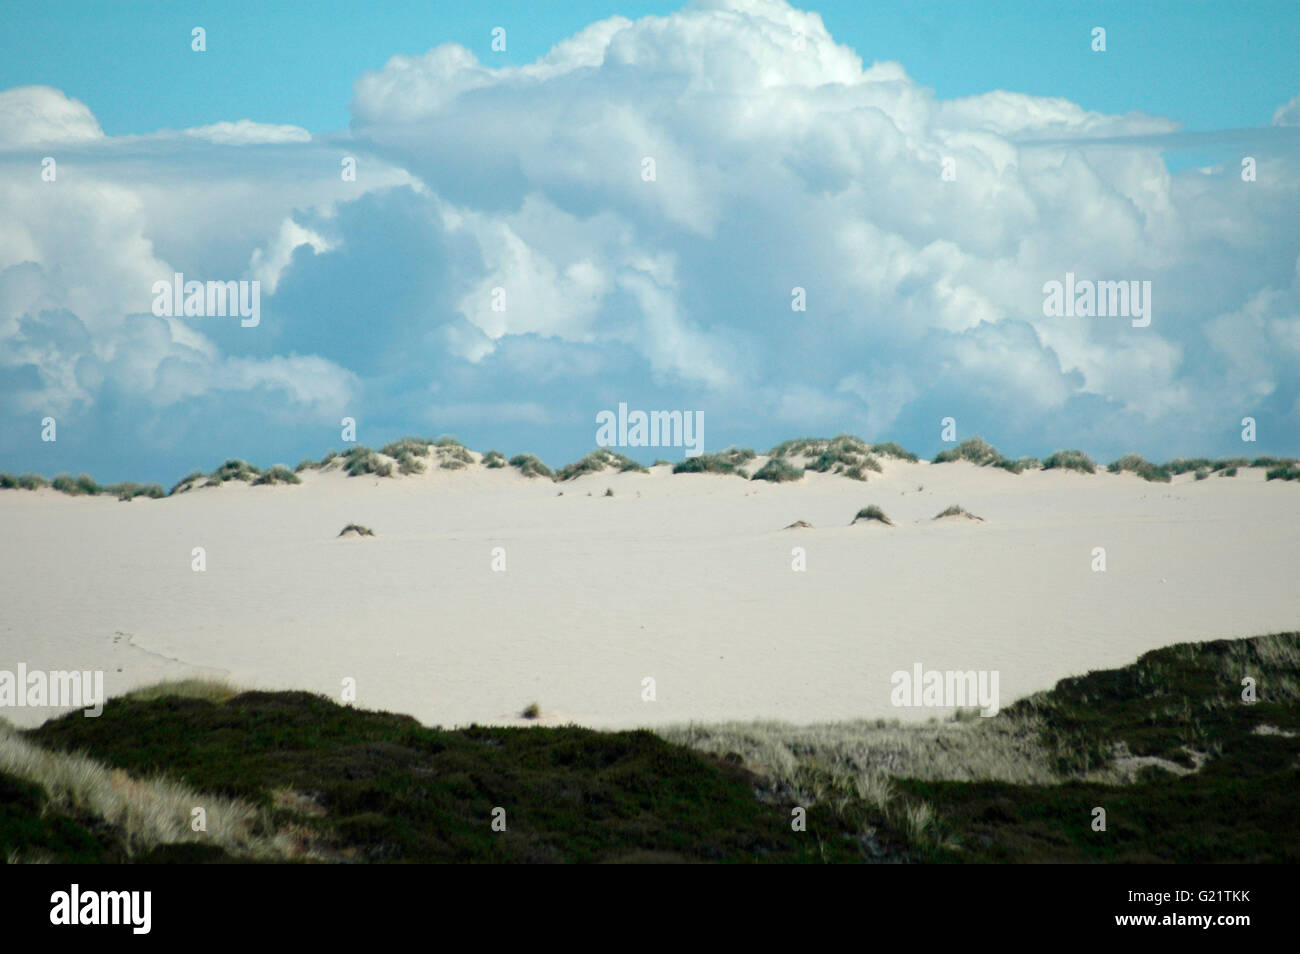 Grosse Wanderduene, Sylt. Stock Photo